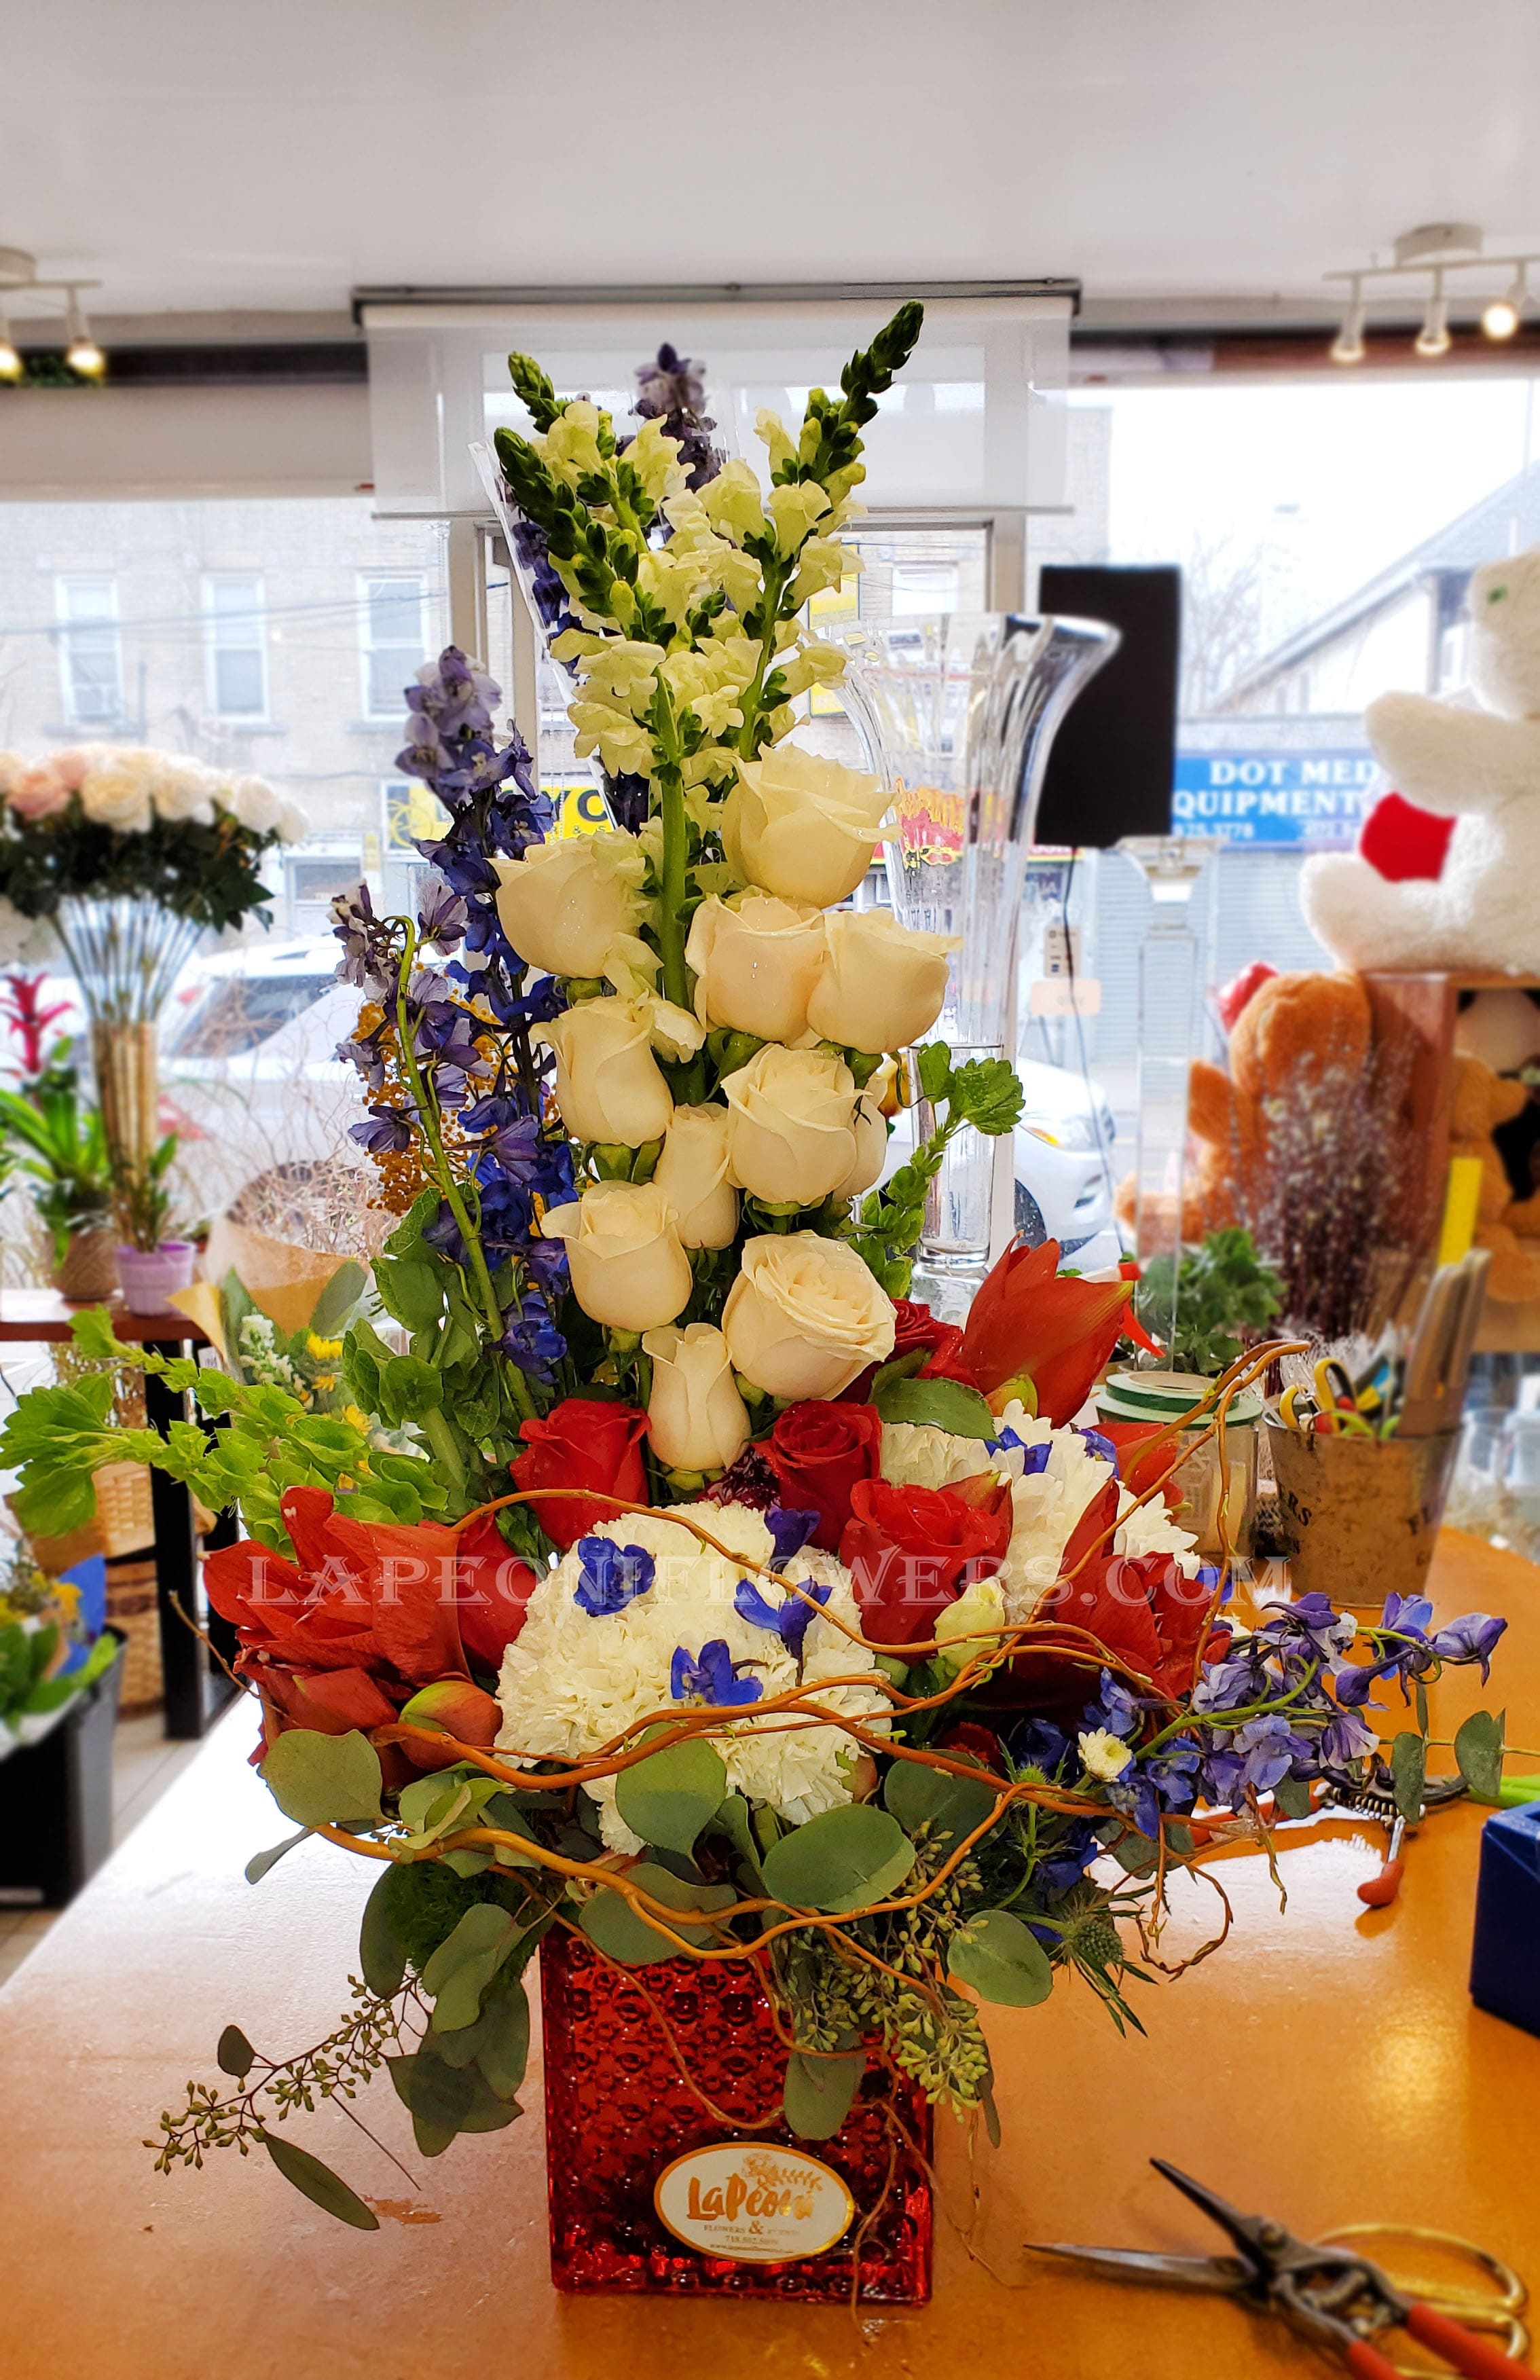 Expression of Blooms - Lapeoni Flowers and Events